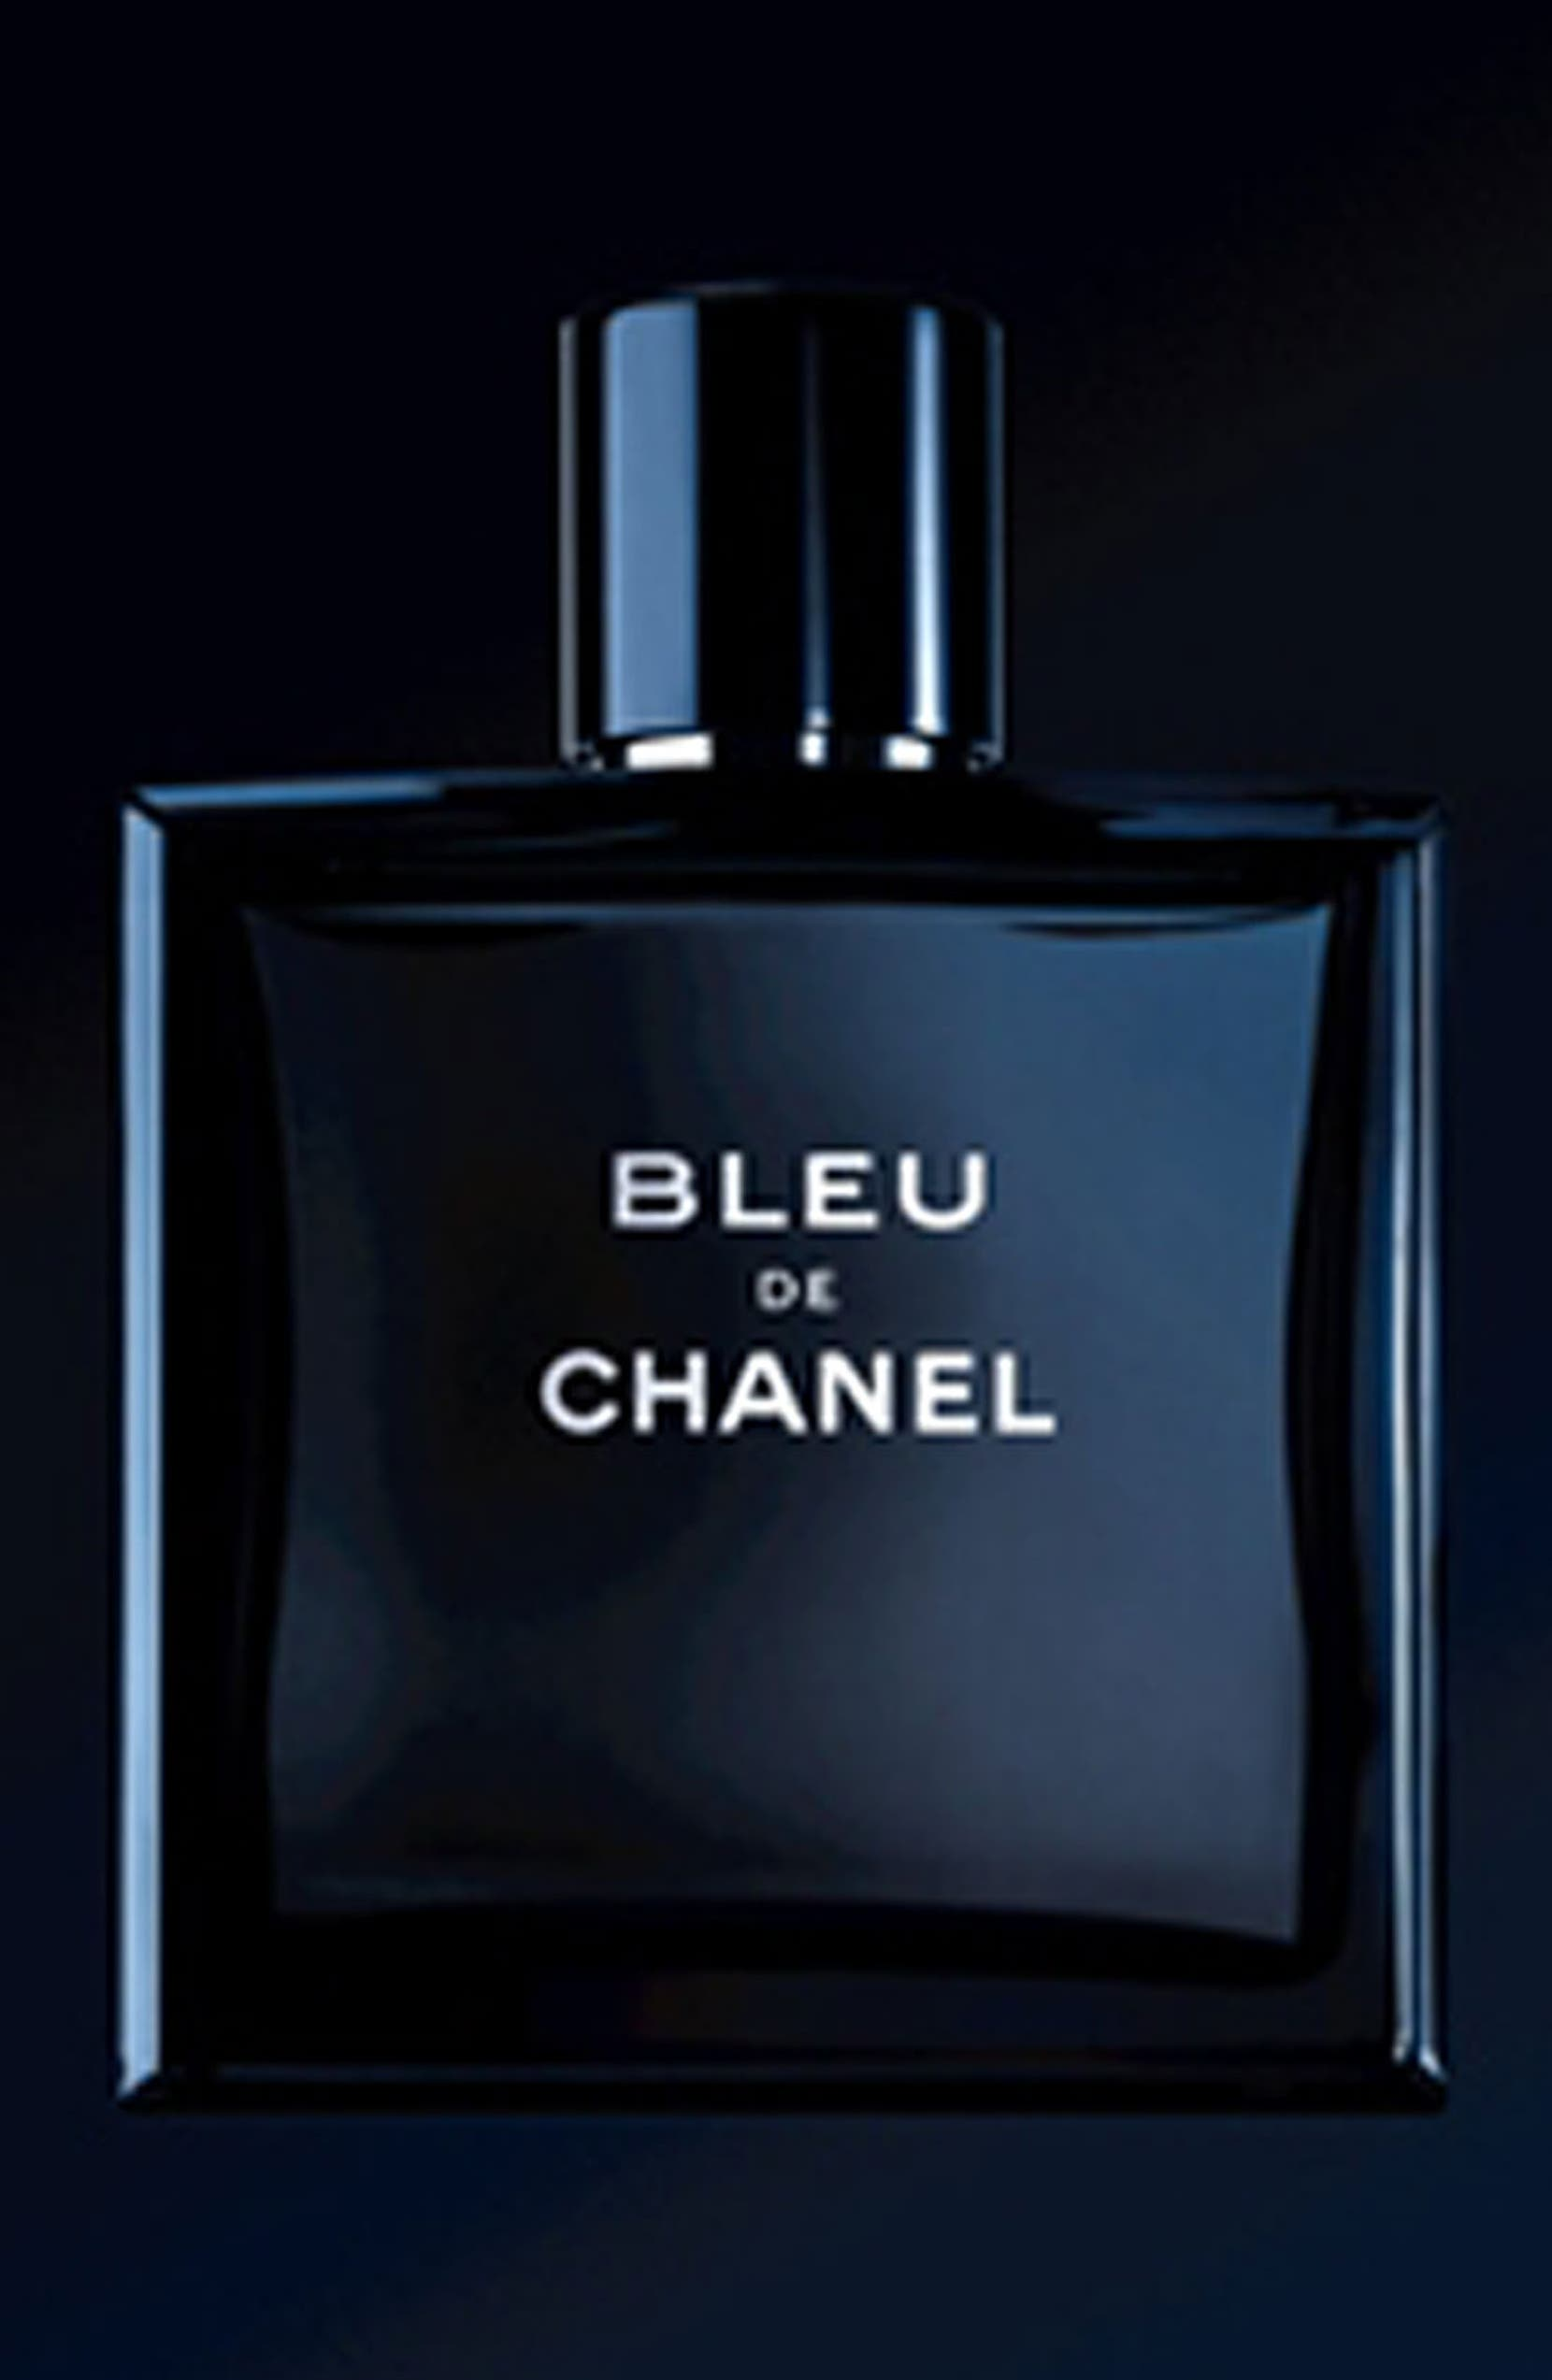 CHANEL BLEU DE CHANEL Eau de Toilette Spray  54401091e691